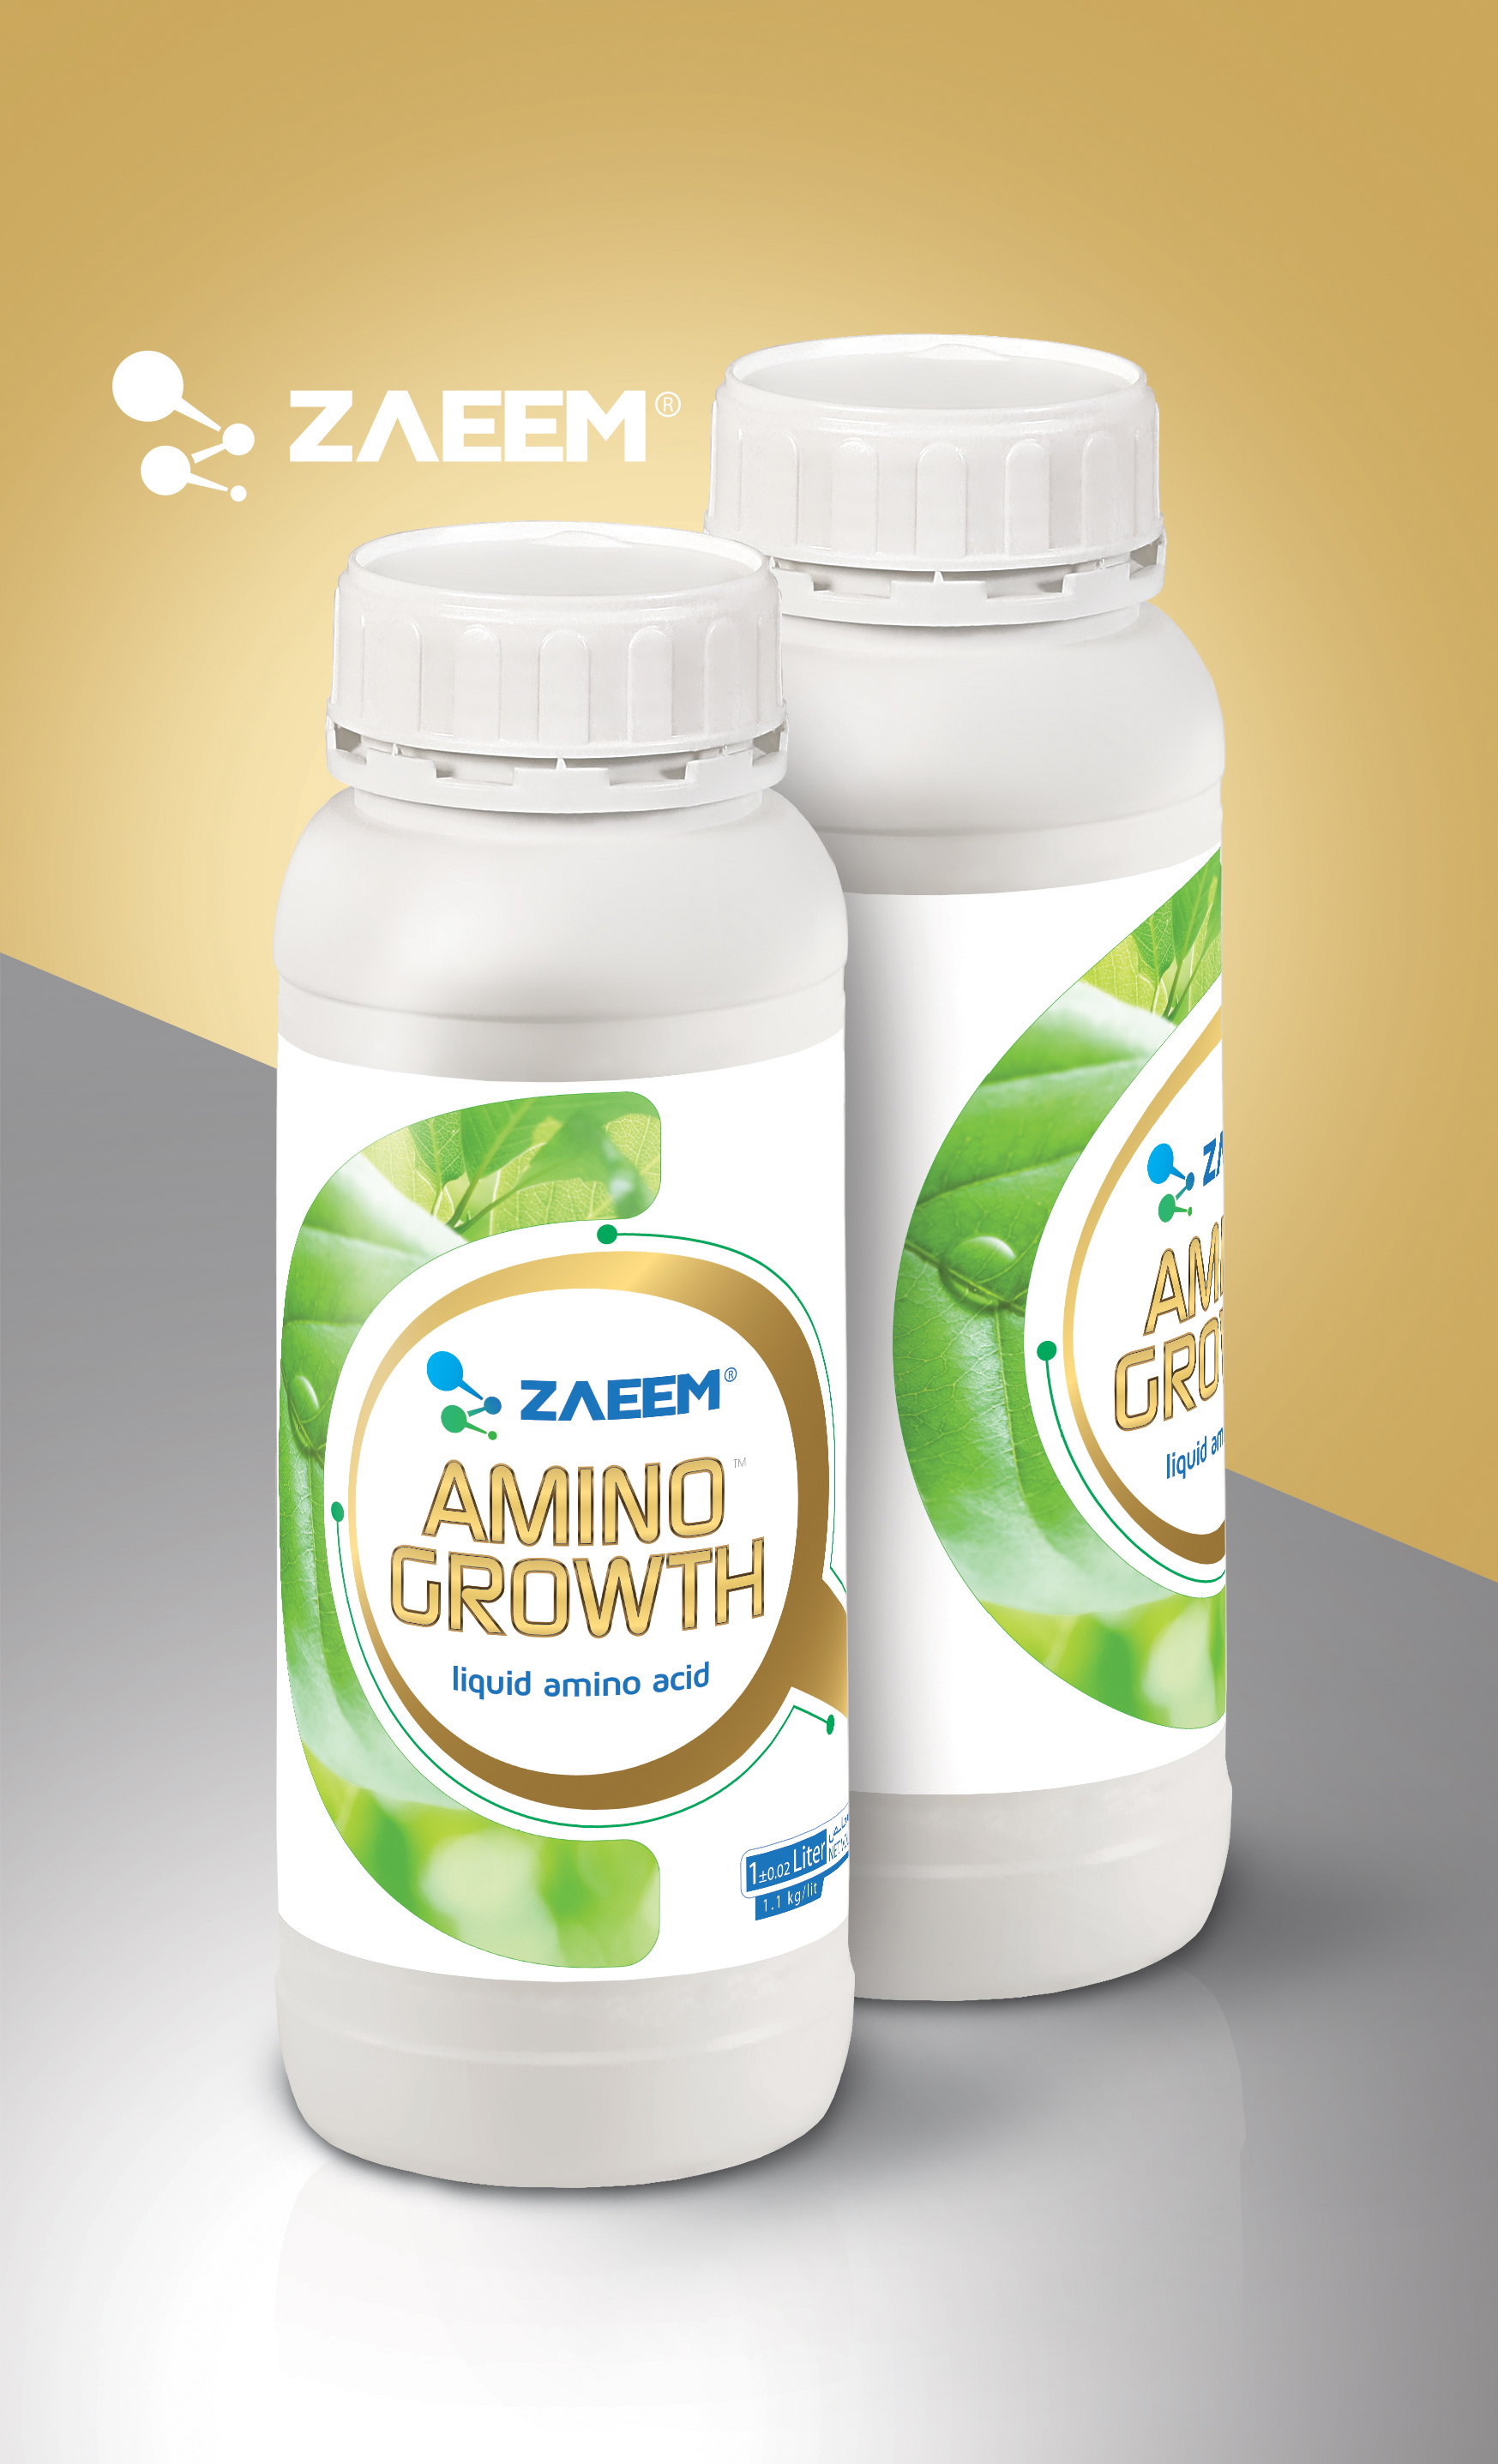 AMINO.GROWTH (آمینو.گِروس)